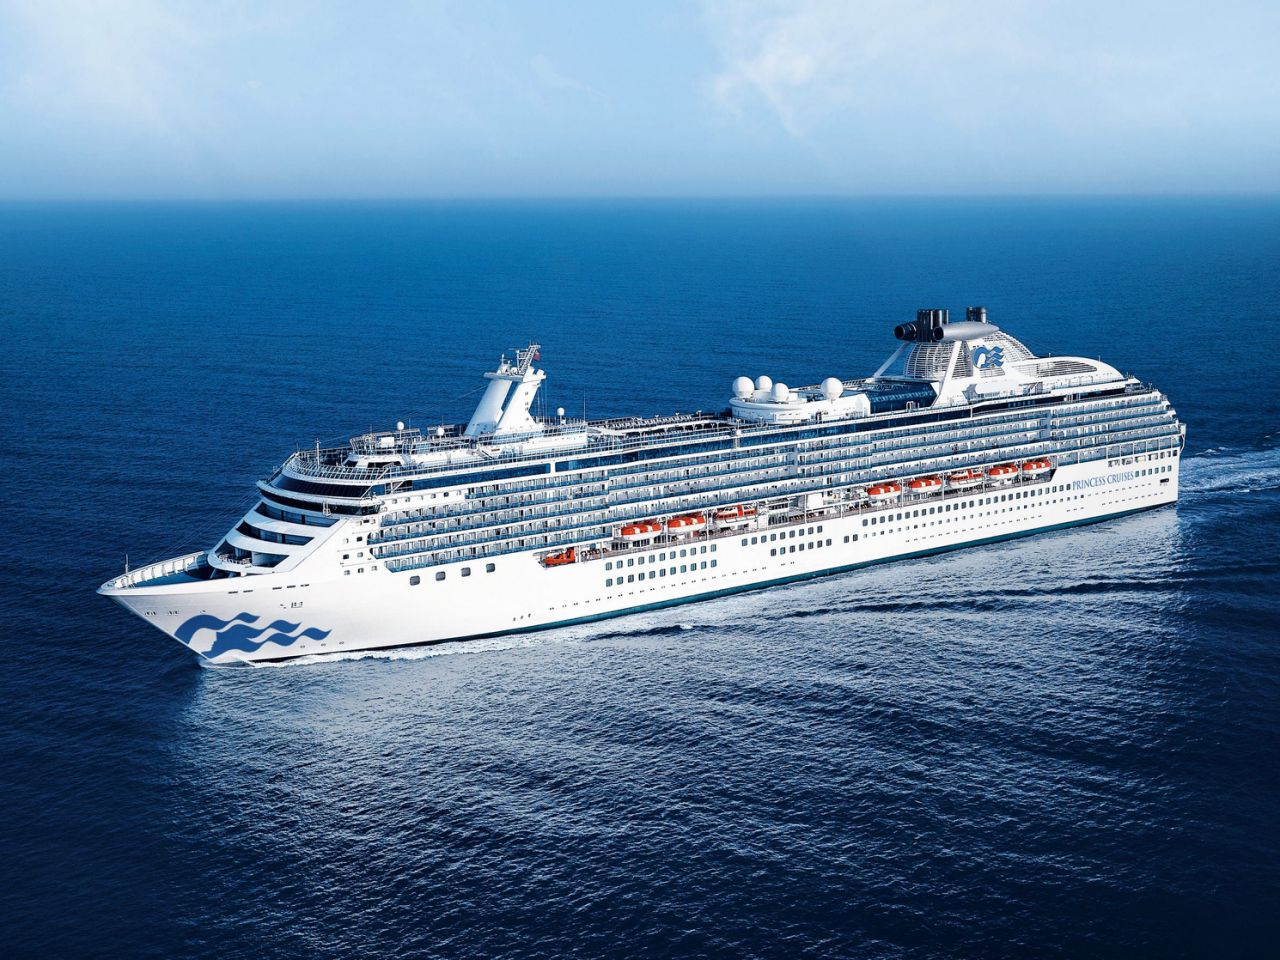 10 cruise ships that are still at sea as the coronavirus shuts down the cruise industry